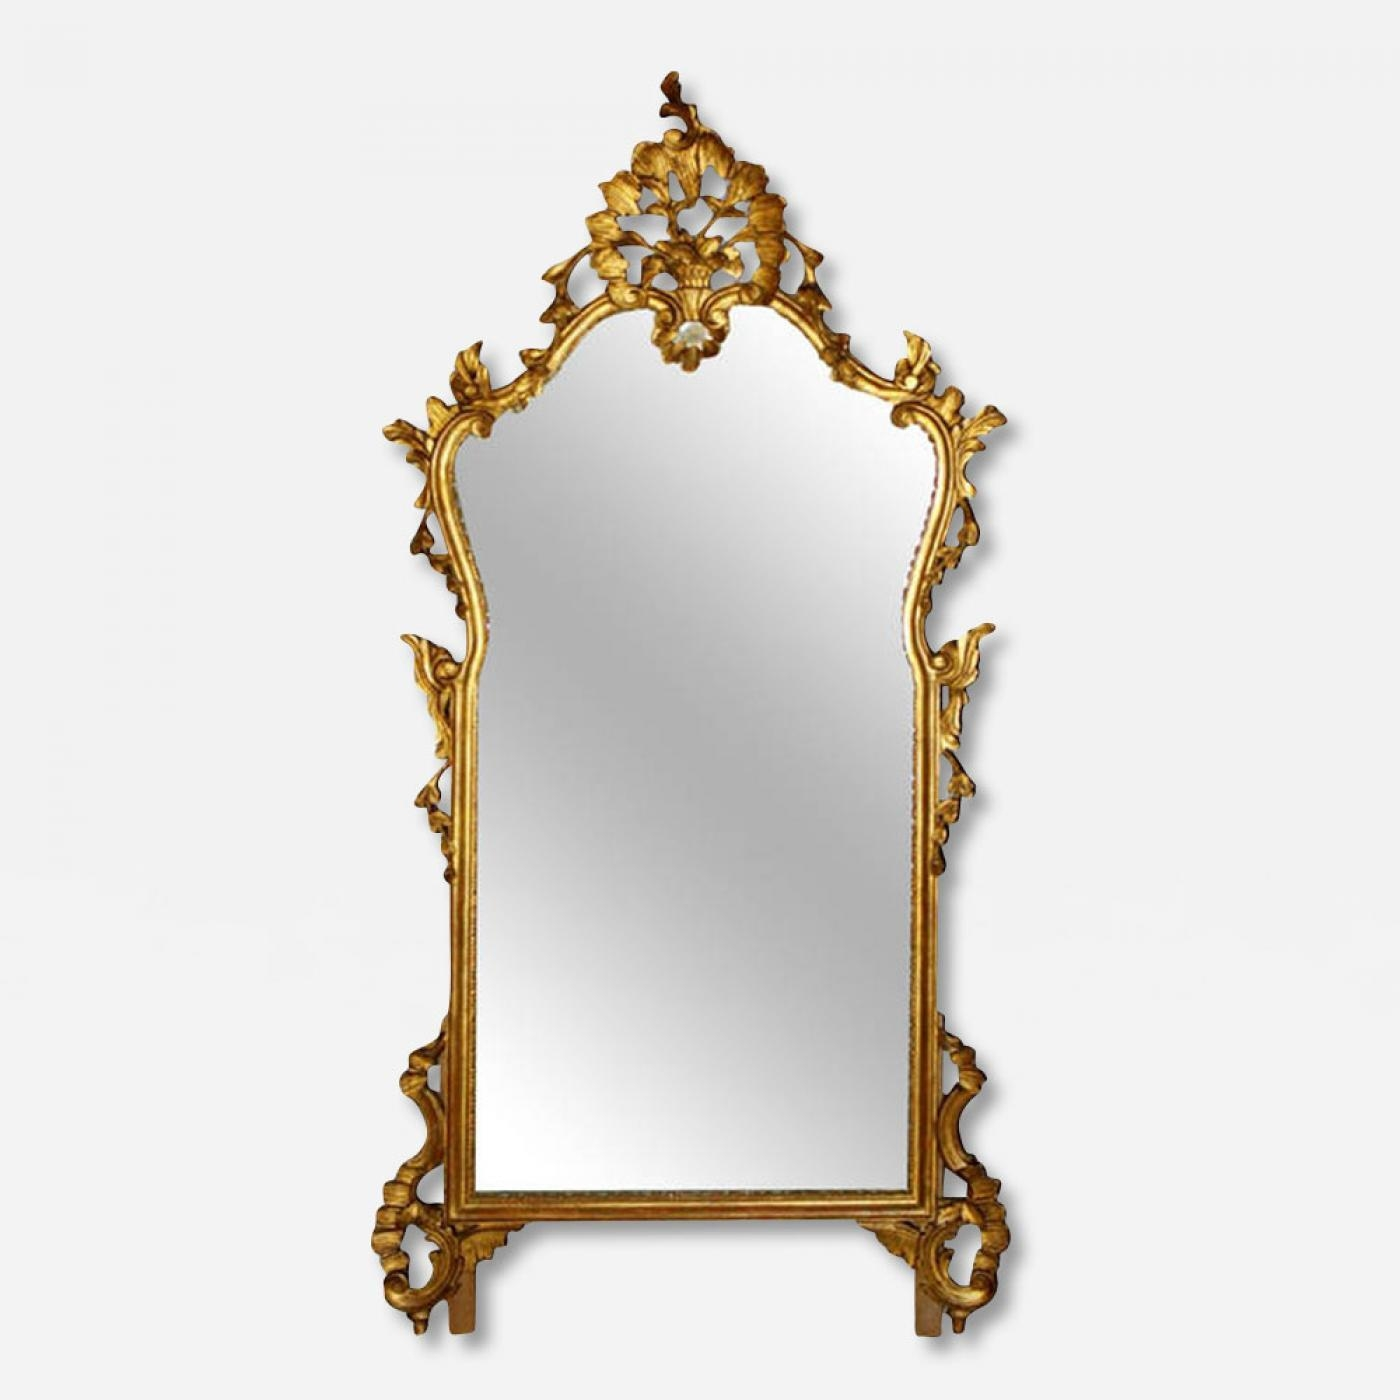 Large Antique French Carved Gilt Wood Mirror Throughout French Wall Mirrors (Image 9 of 20)